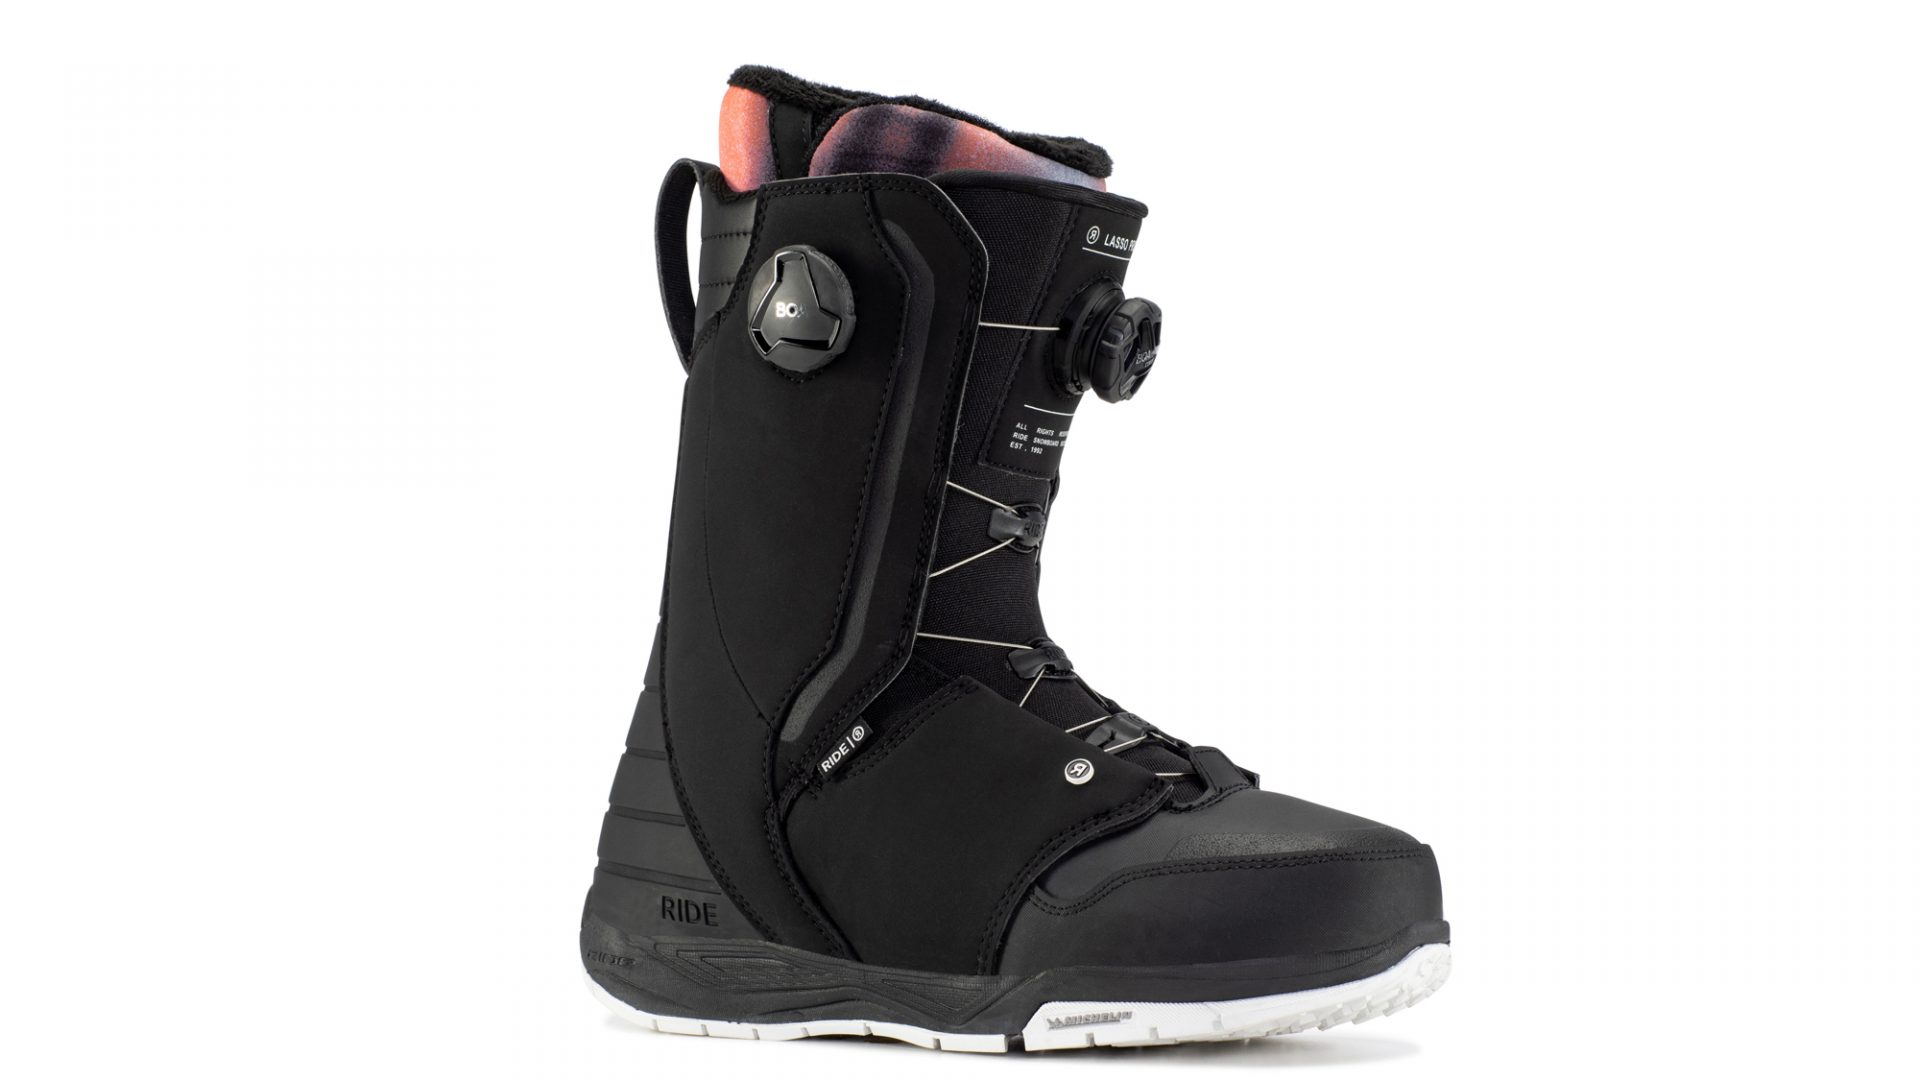 Ride Snowboards FW20/21 Snowboard Boots